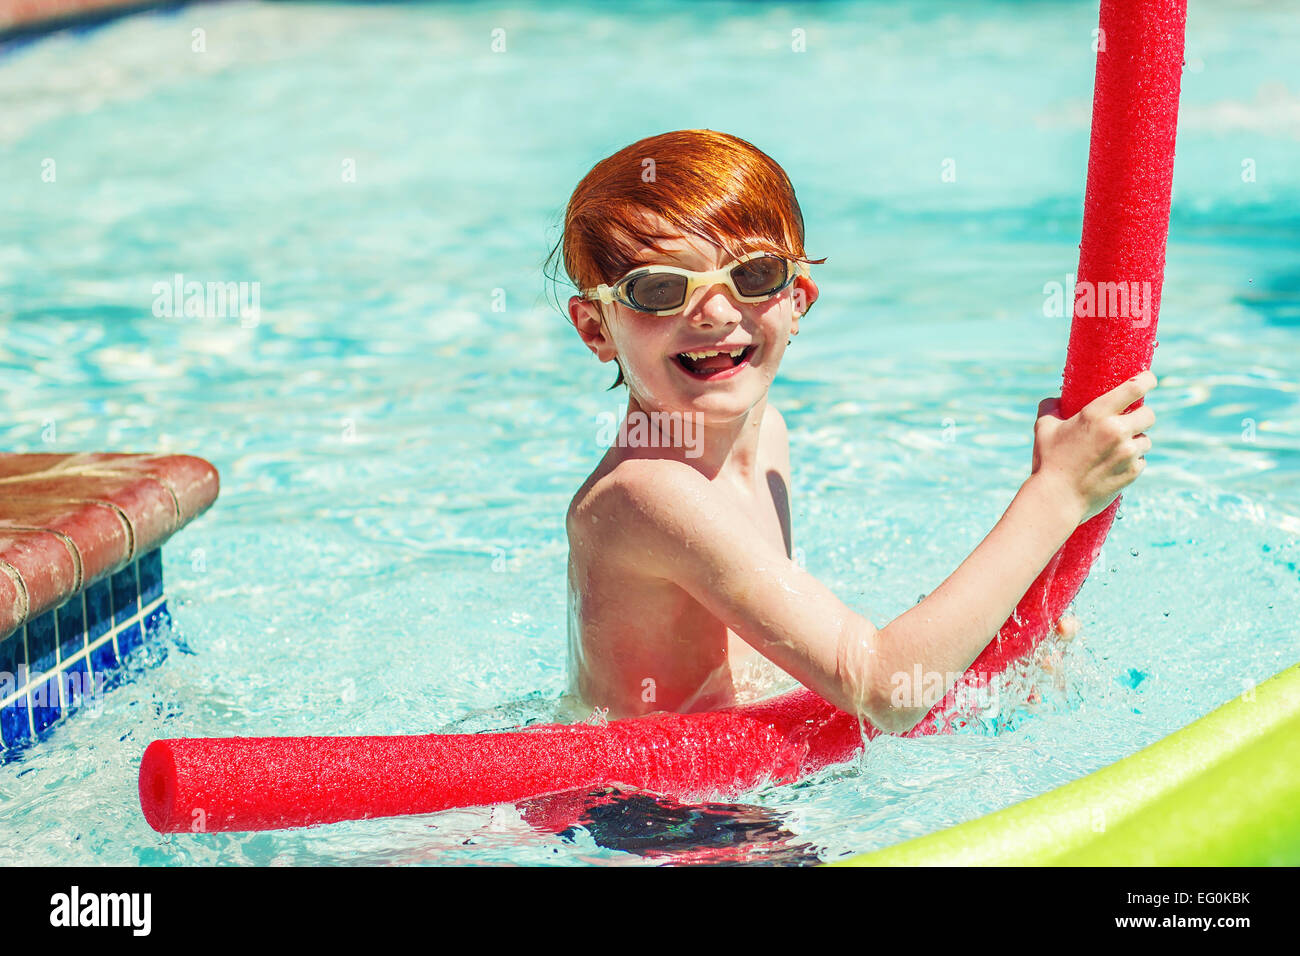 Young boy (6-7) playing in swimming pool - Stock Image